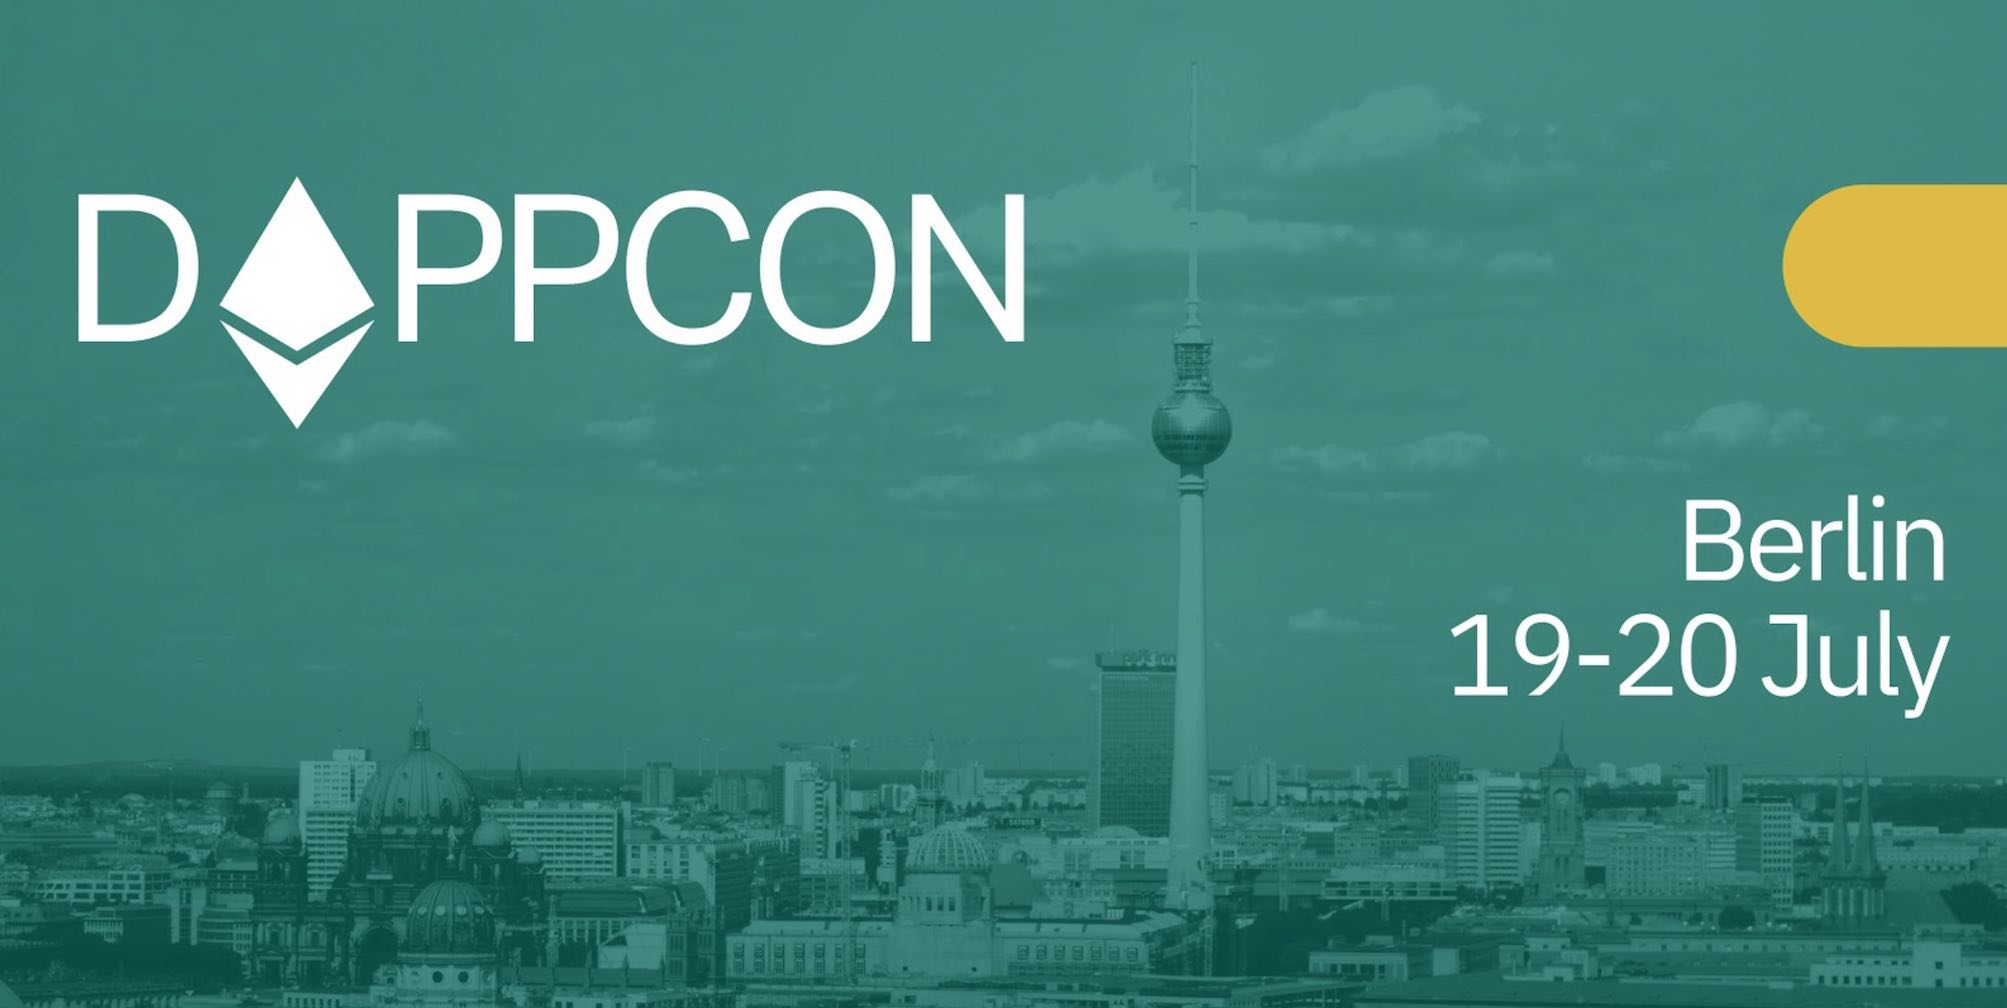 DappCon-Berlin-Developer-Conference-for-Ethereum-DApps-Infrastructure-July-19th-20th-